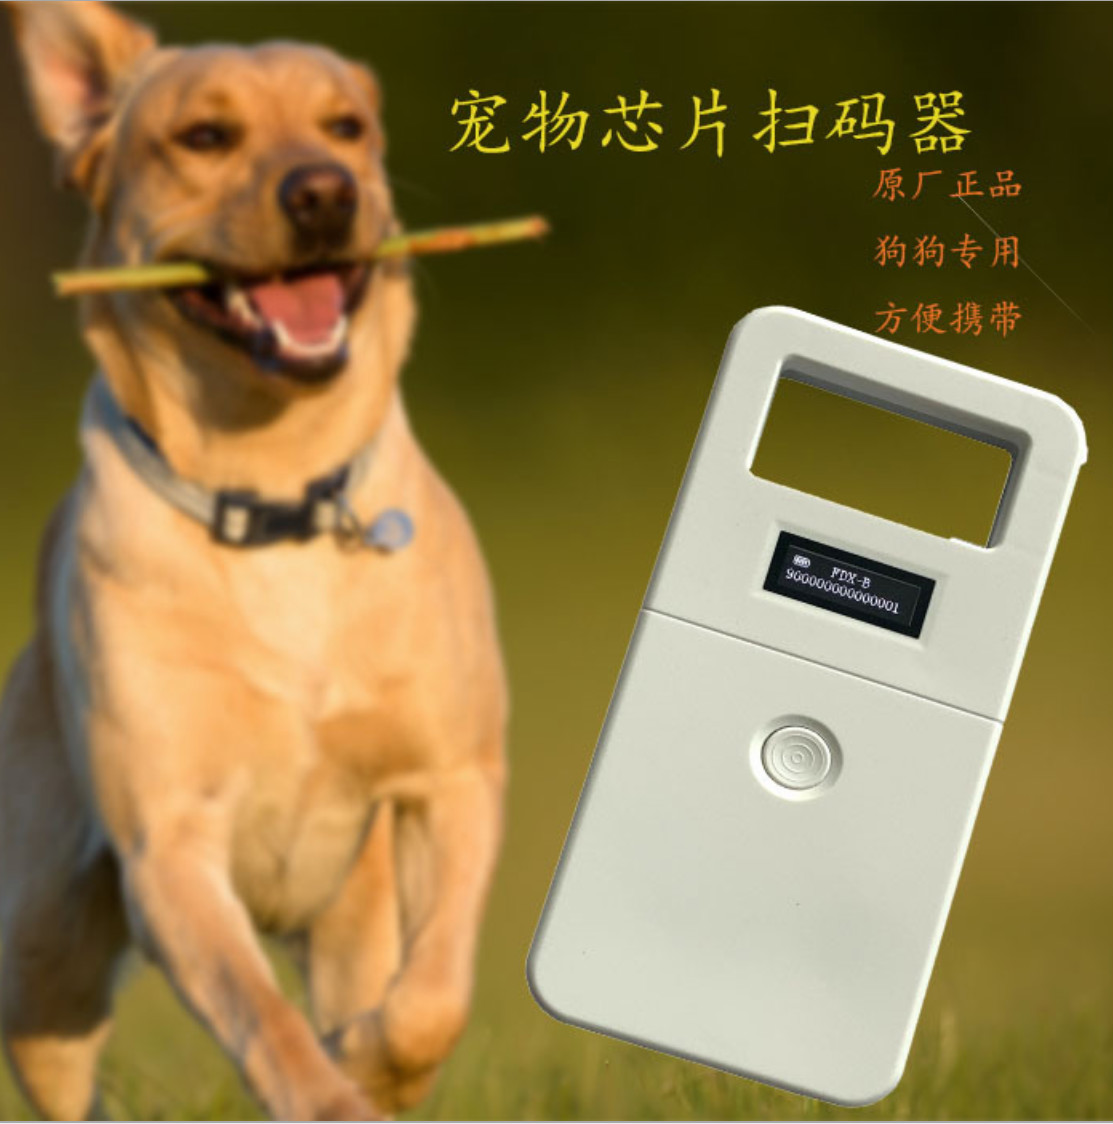 New Animal Handheld Card Reader RFID 134.2Khz Pet Chip Scanner Identification Label Reading FDX-B&EMID For Dogs Or Cats